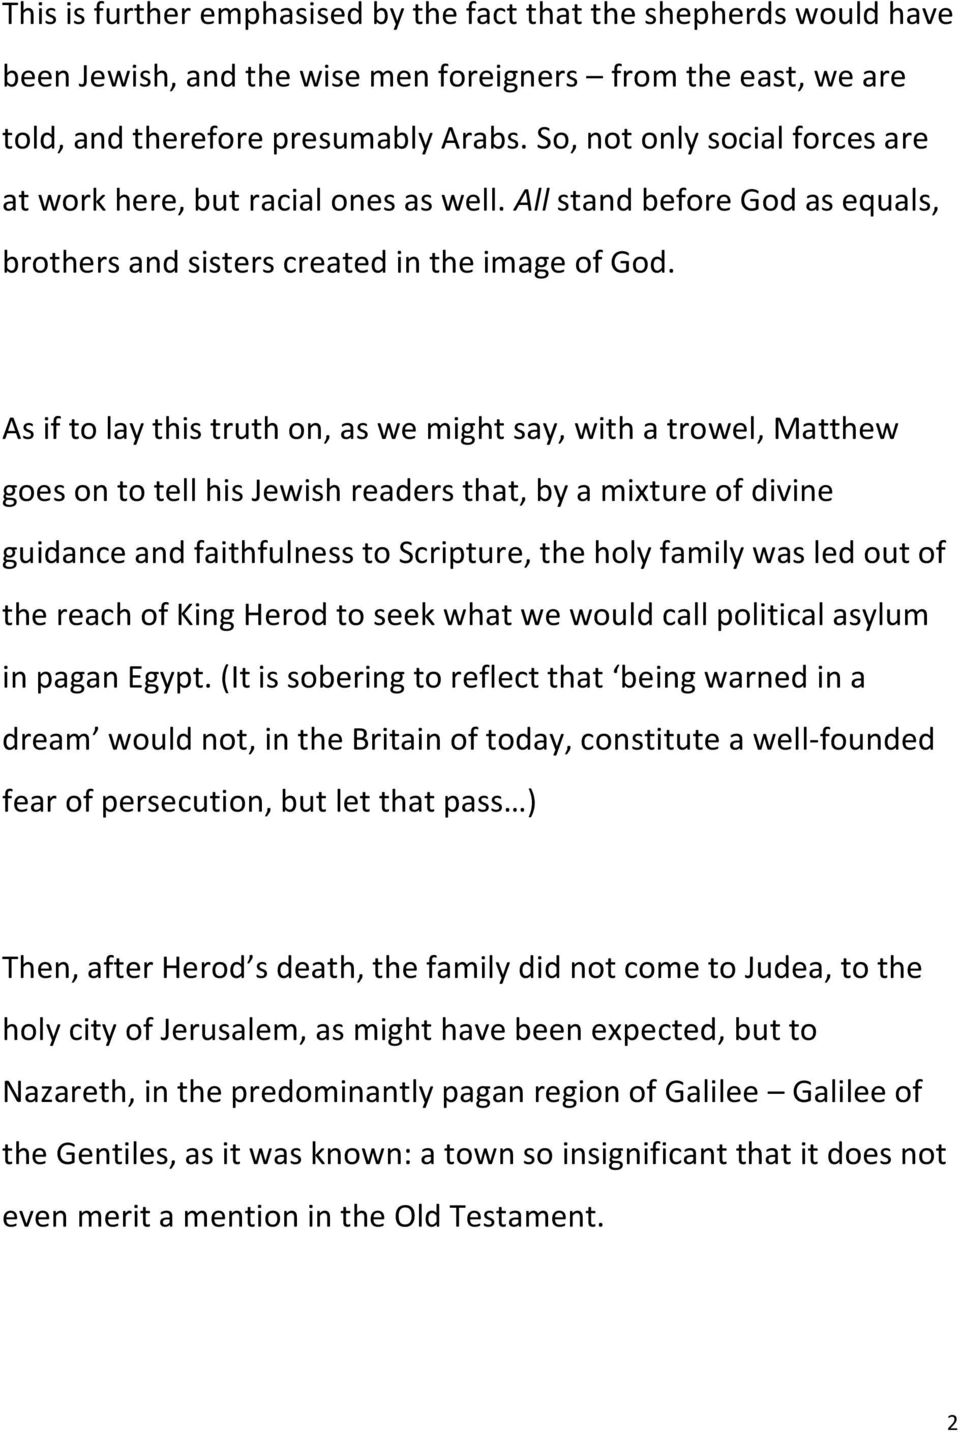 As if to lay this truth on, as we might say, with a trowel, Matthew goes on to tell his Jewish readers that, by a mixture of divine guidance and faithfulness to Scripture, the holy family was led out